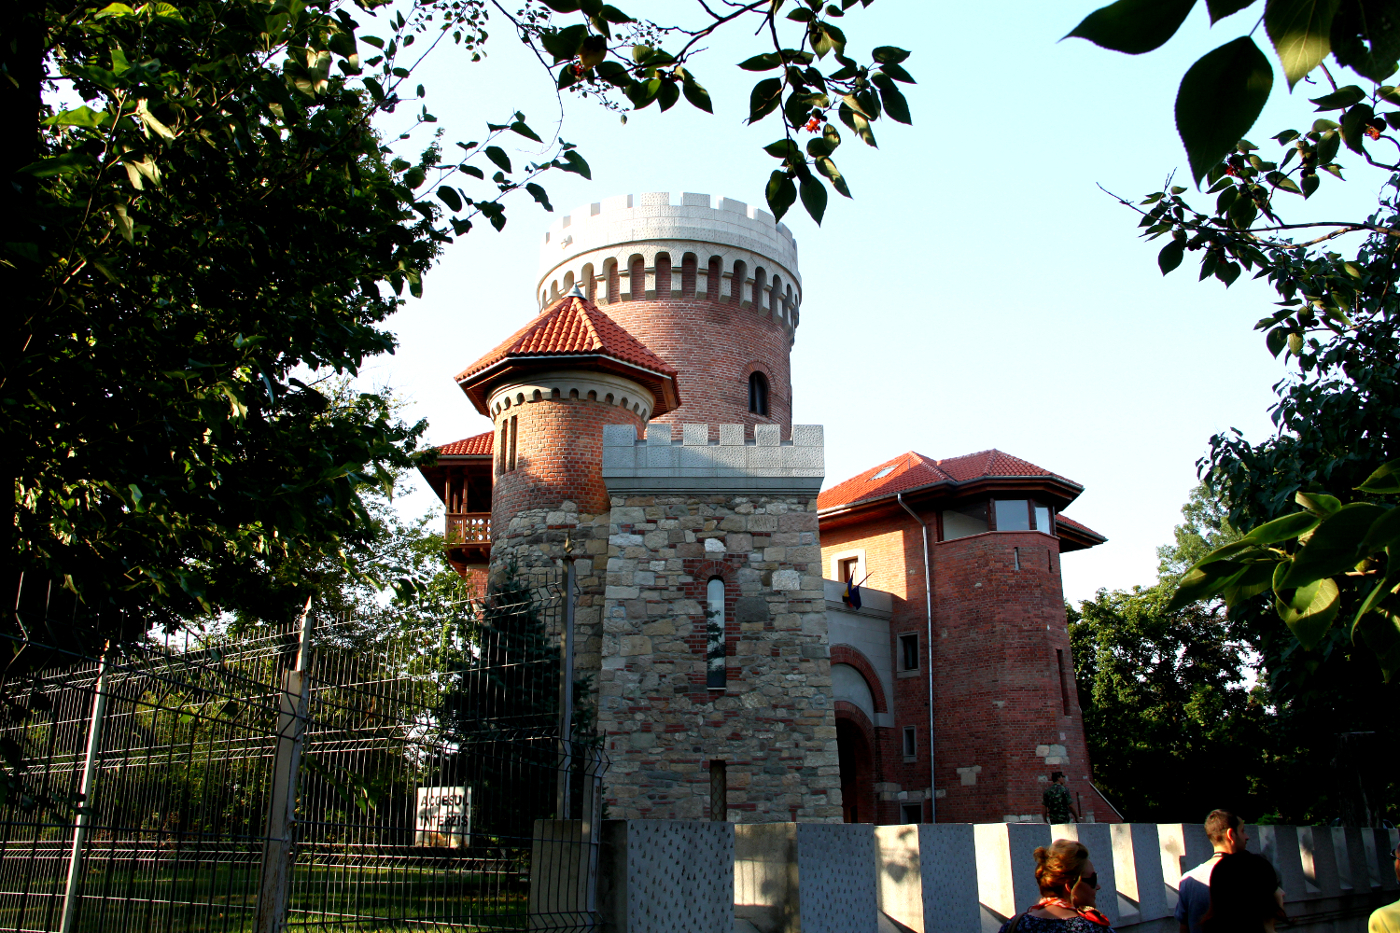 Vlad Tepes (Vlad the Impaler) castle in Bucharest